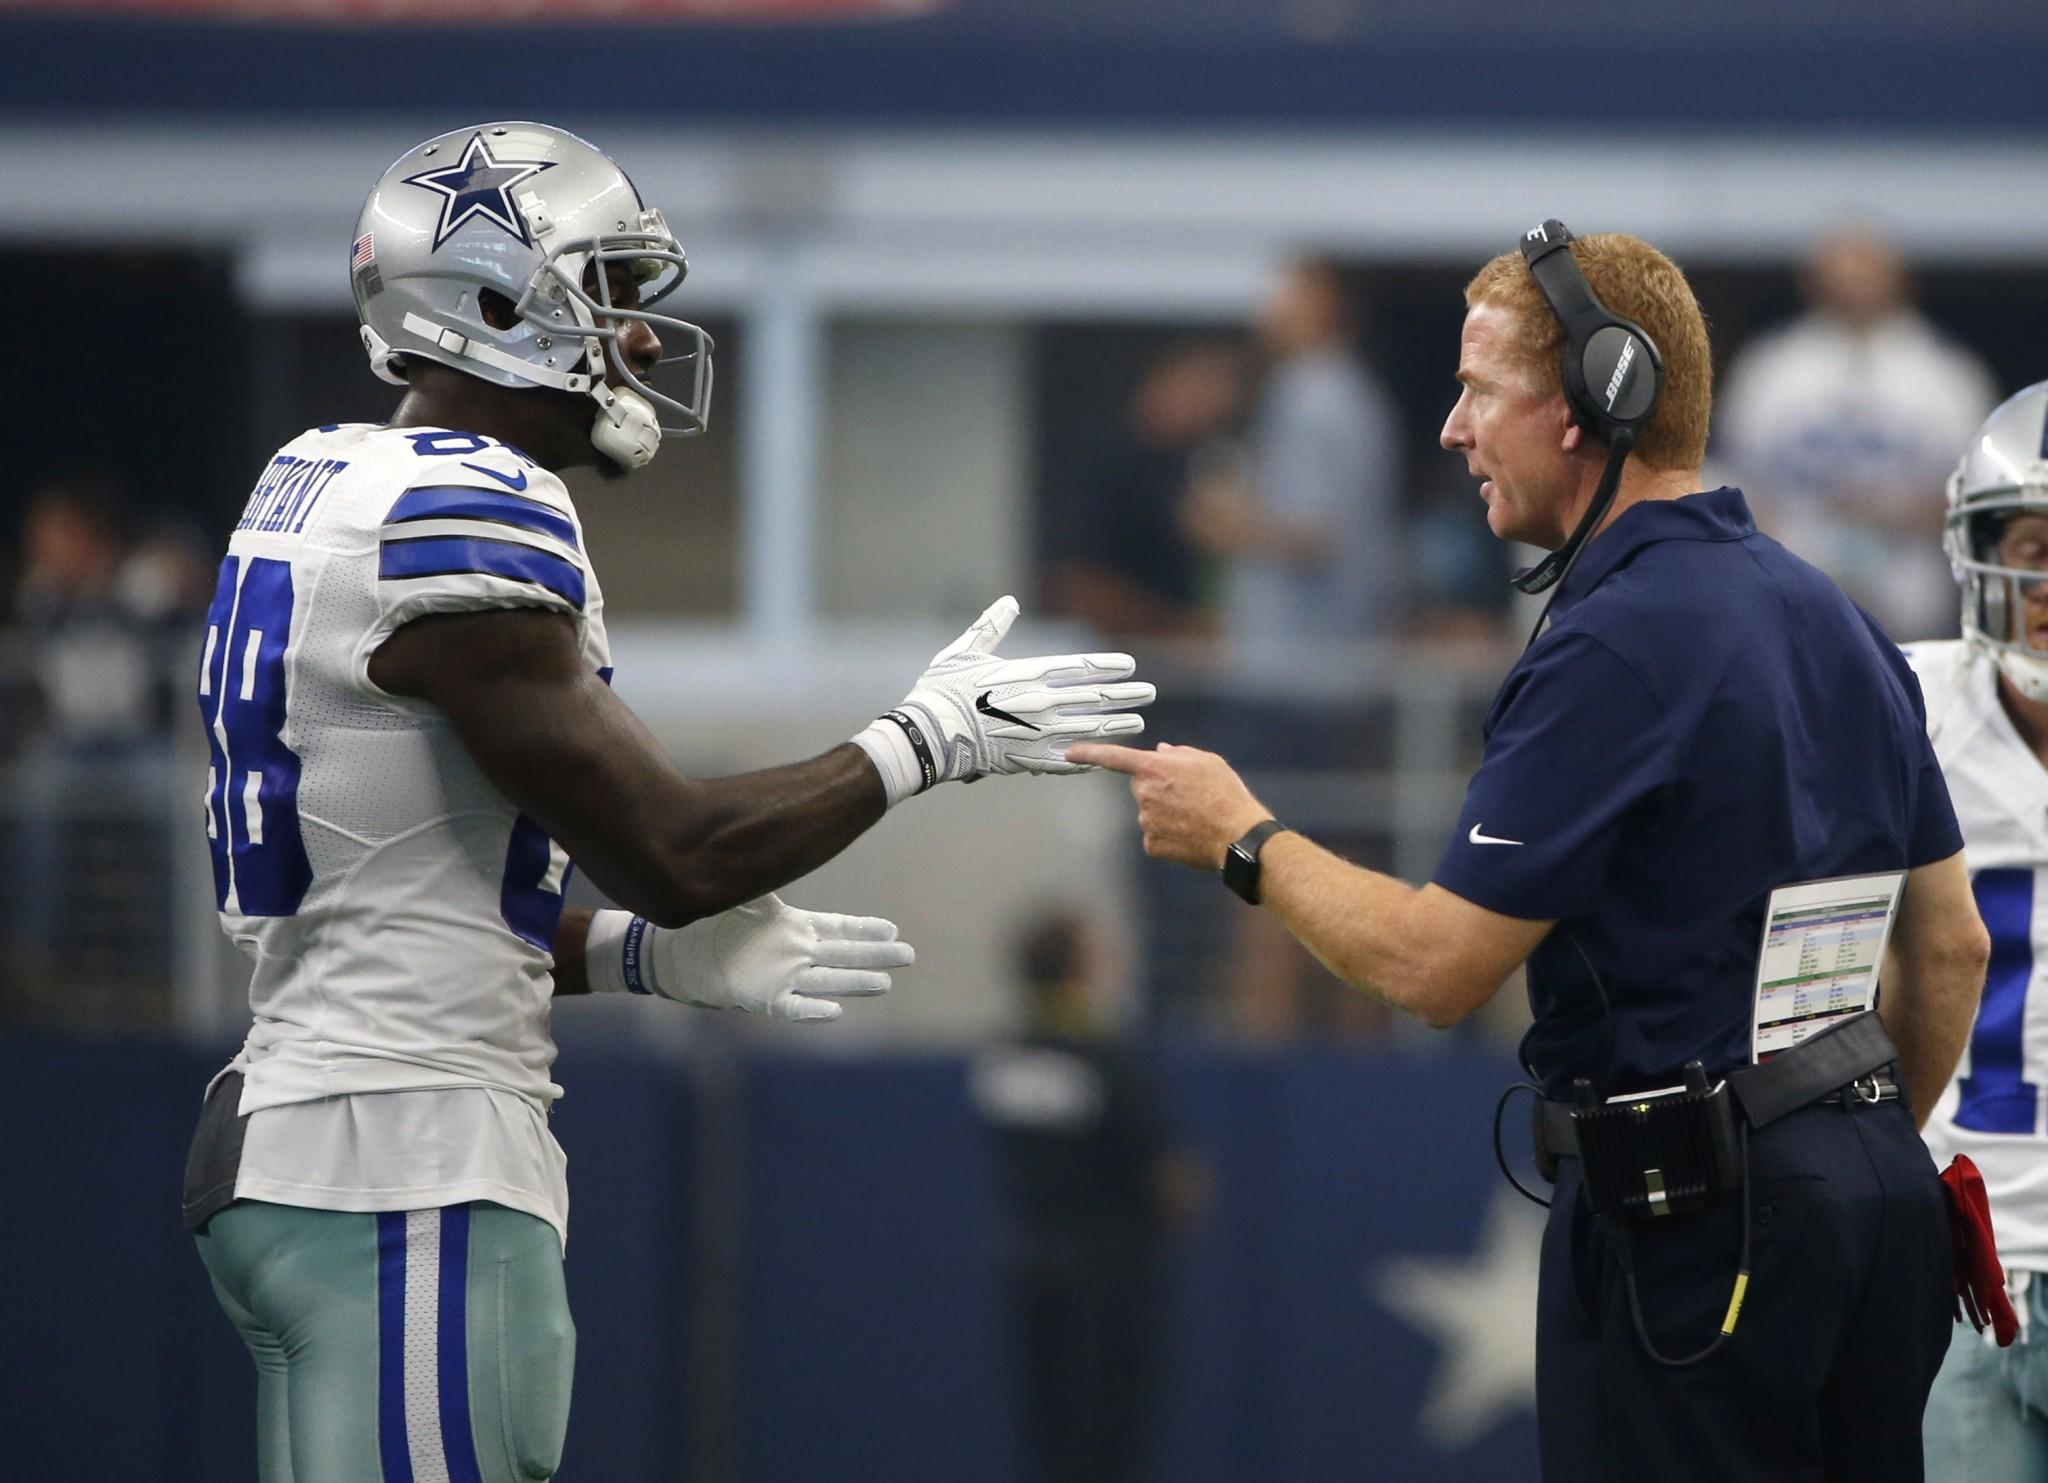 Dez Bryant said he sliced finger cutting carrots in extremely